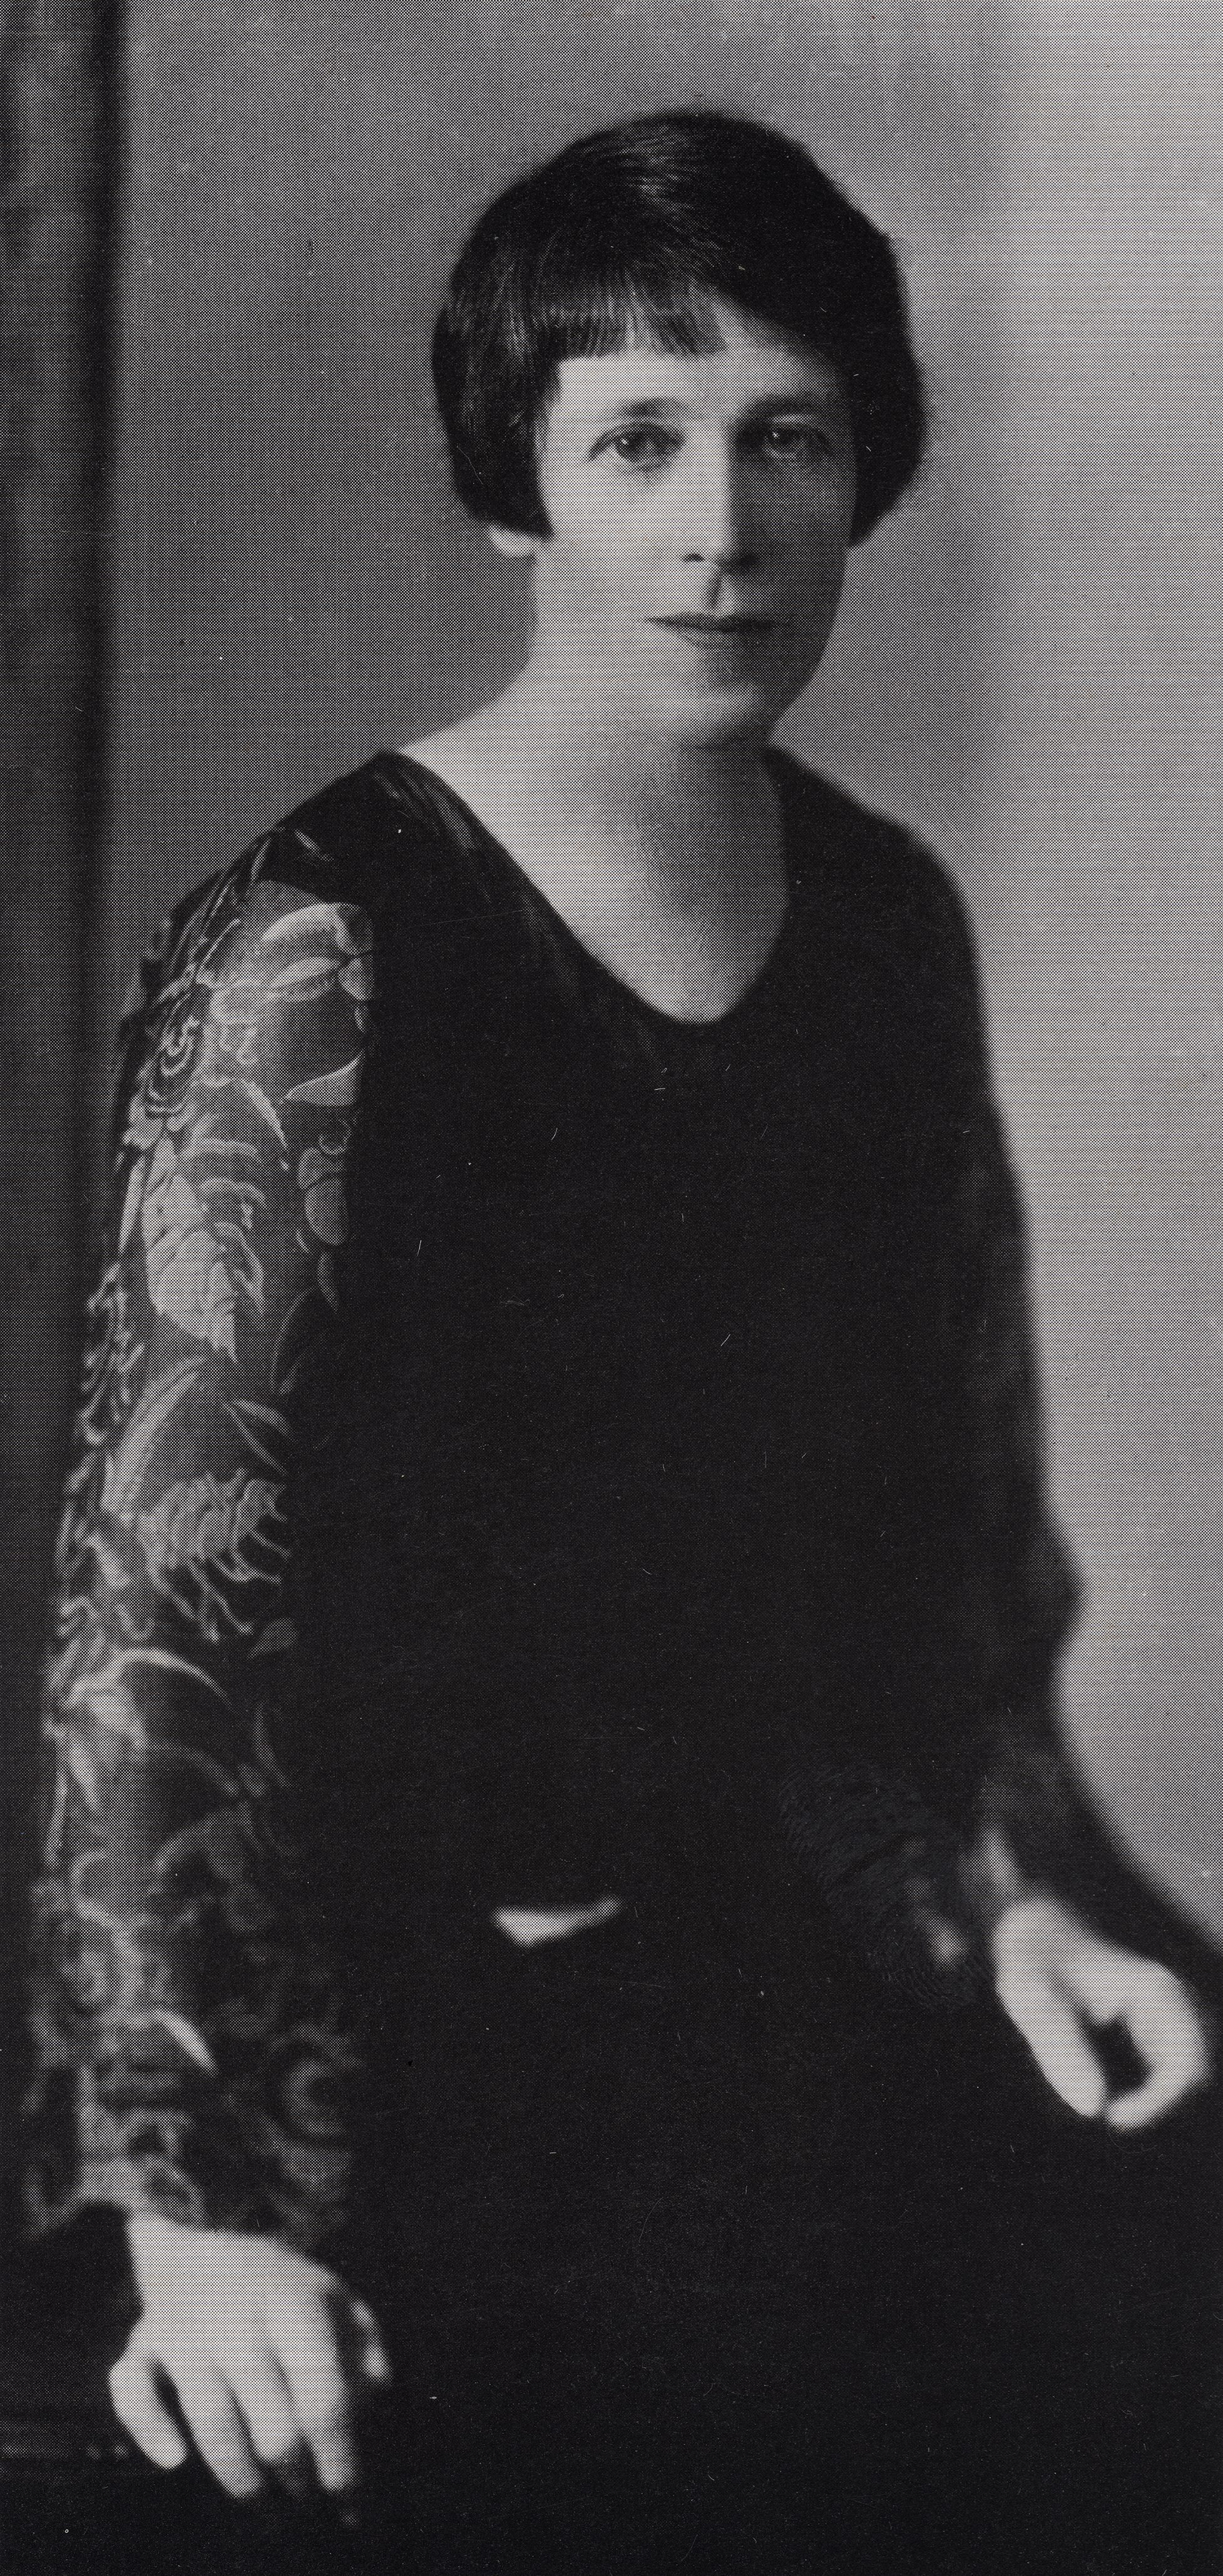 Vida Lahey, 1927, photograph courtesy of John and Hazel Lahey.